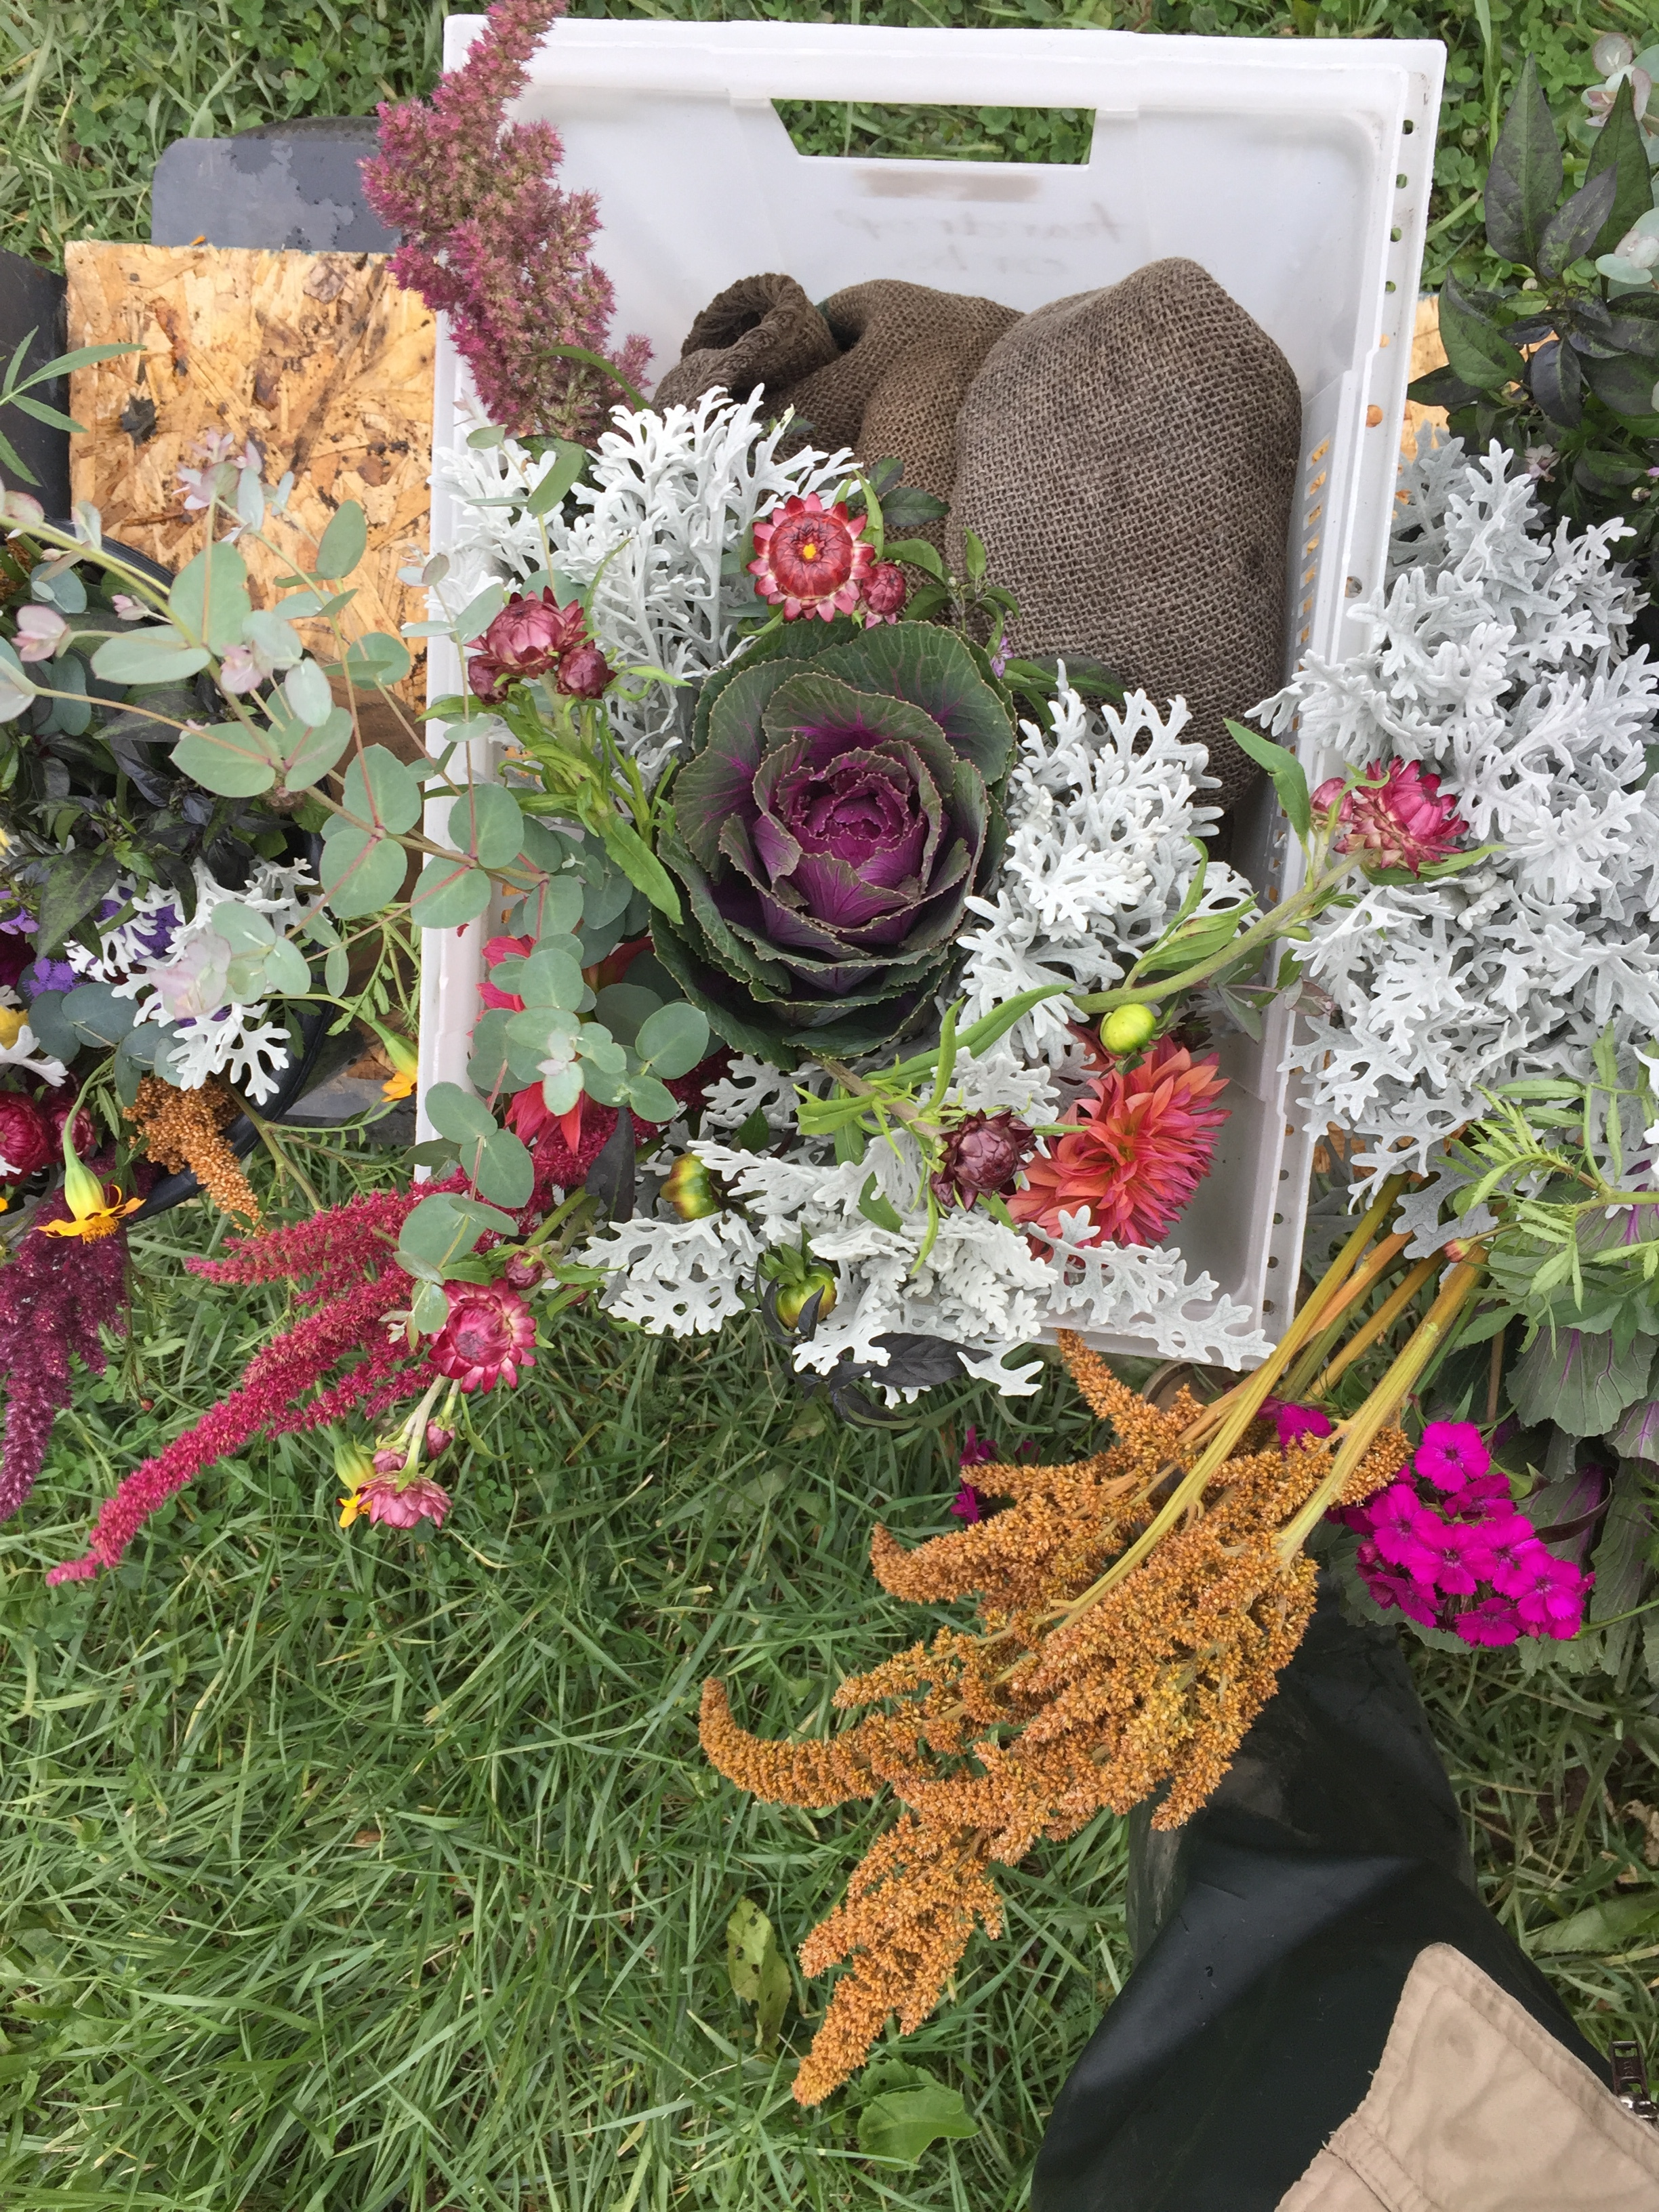 Amaranth, dianthus, dahlias, marigolds, dusty miller, strawflowers, kale, and eucalyptus make up our last week's deliveries.